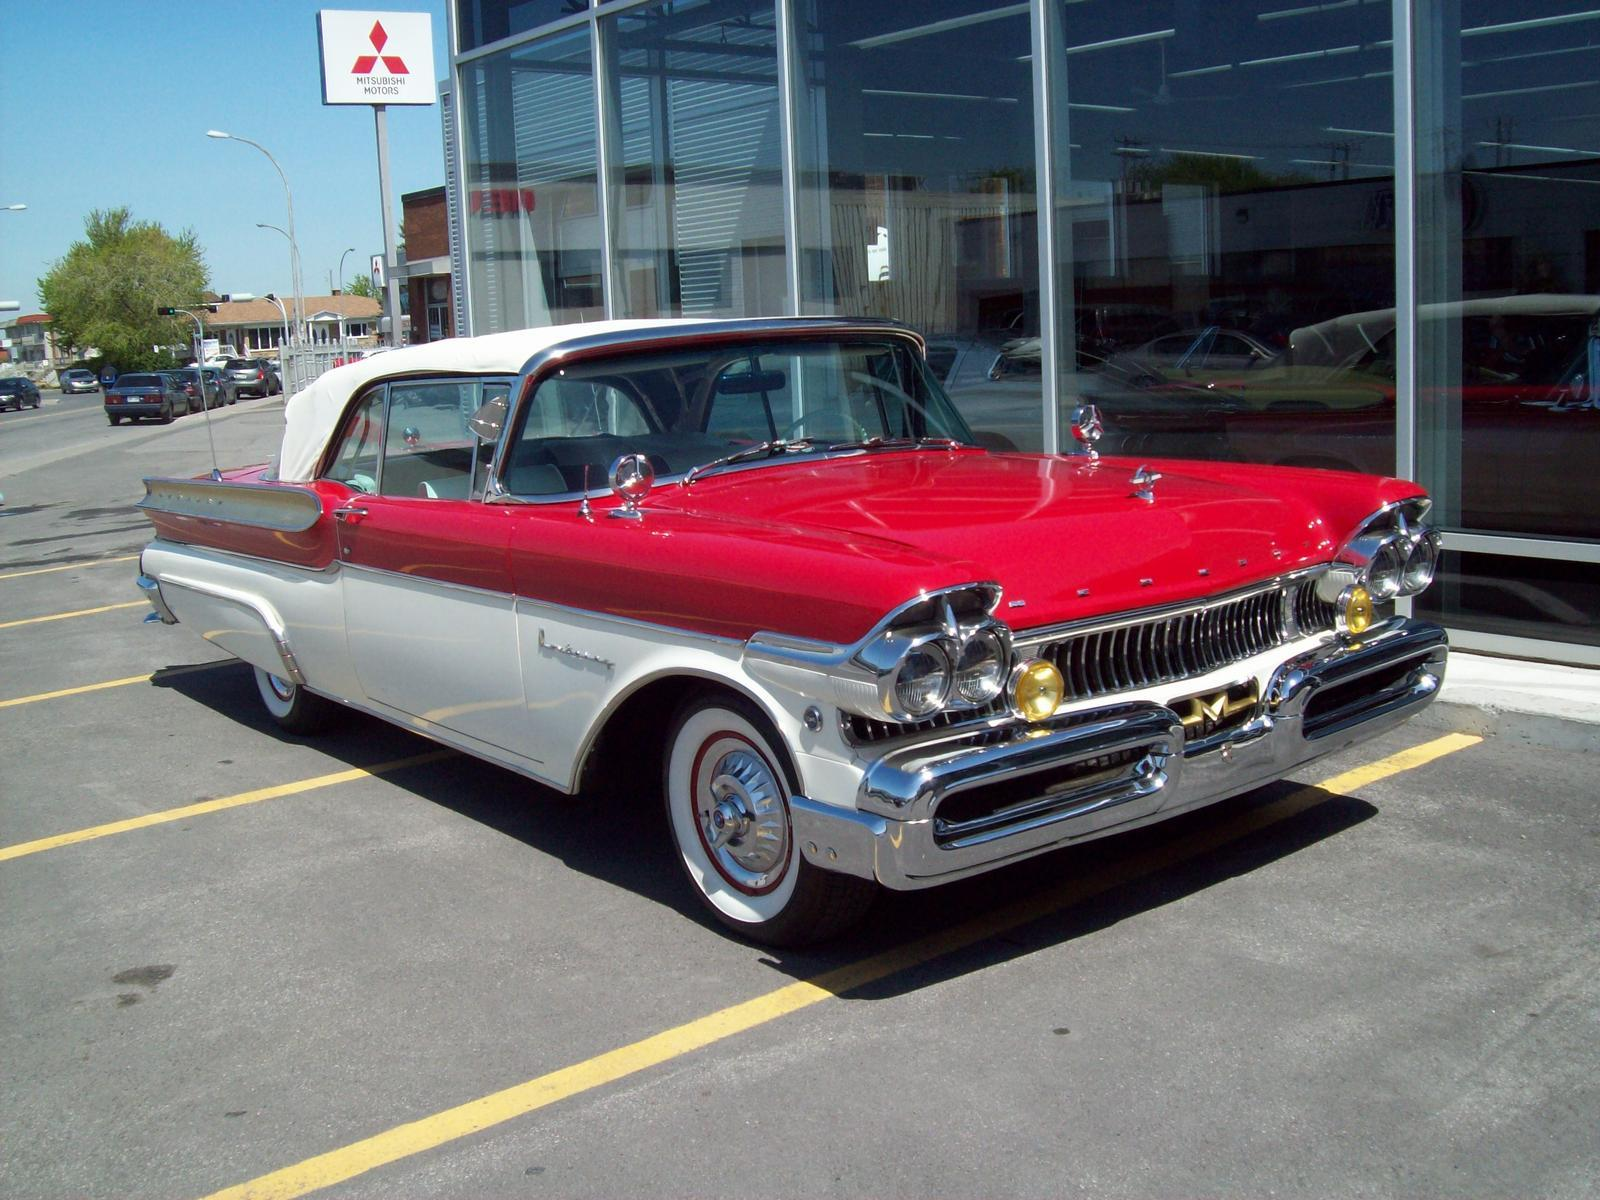 Used 1957 Mercury Turnpike Cruiser Convertible for sale in Saint ...